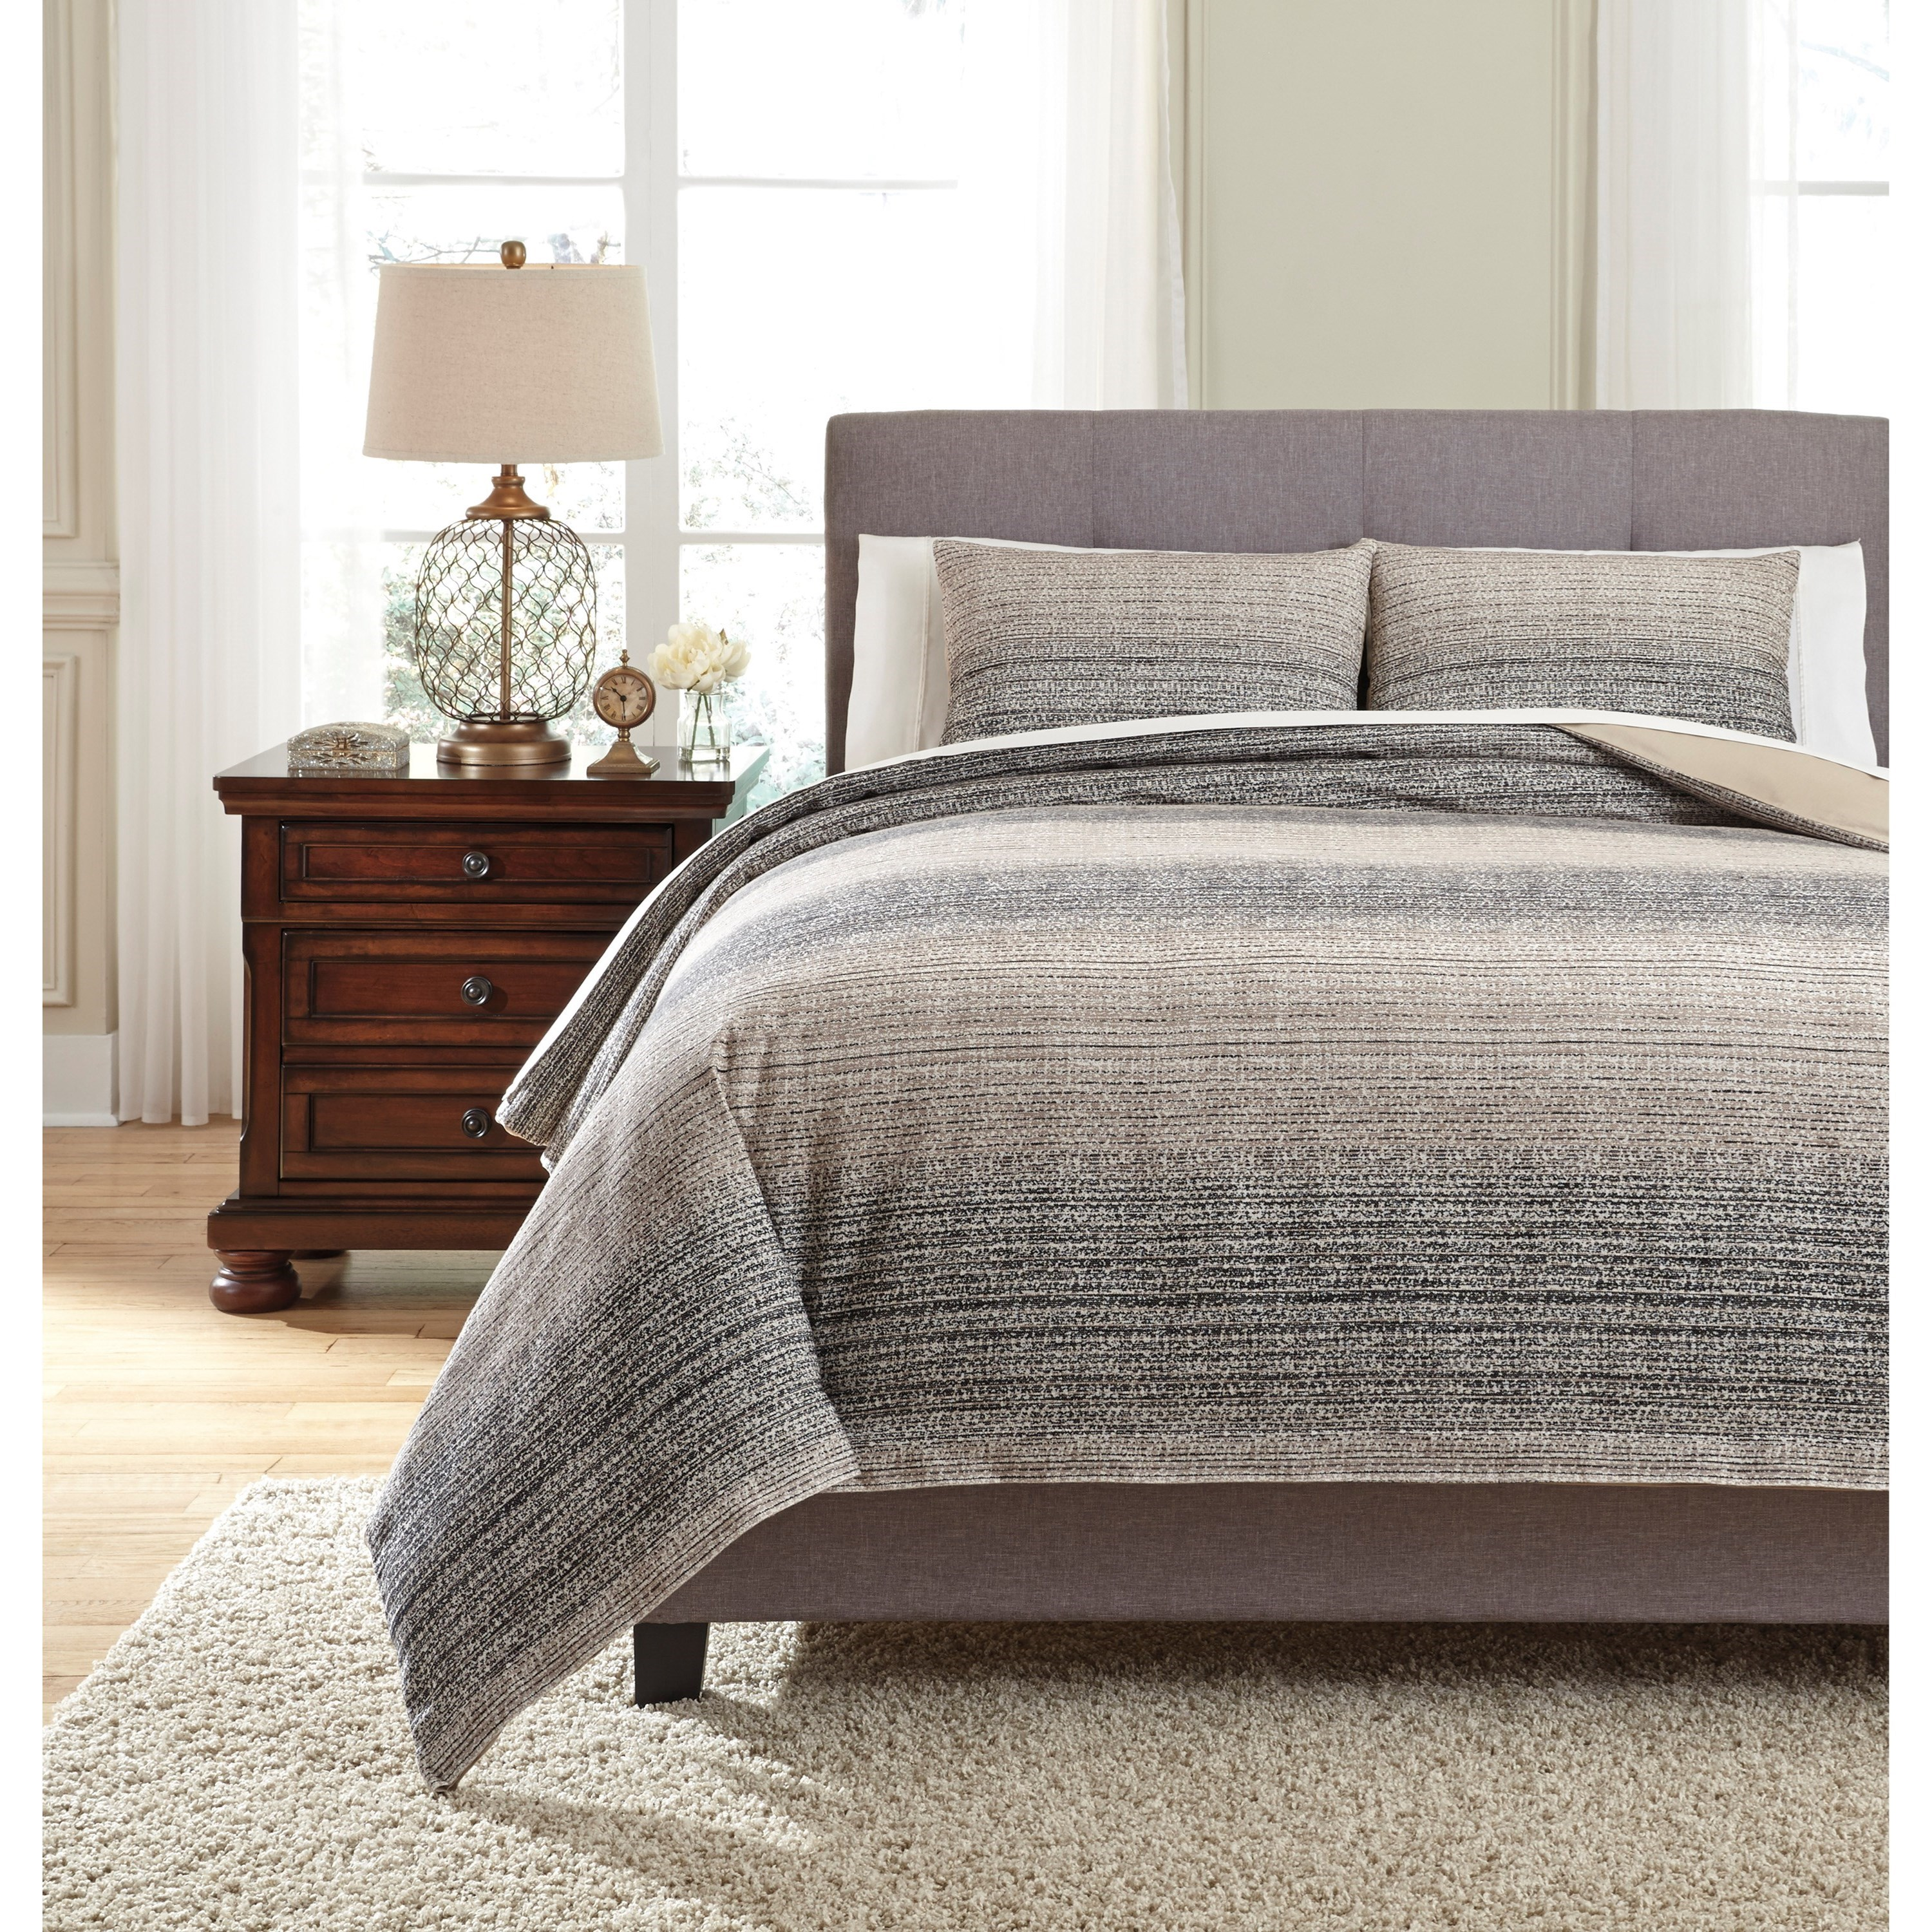 Queen Arturo Duvet Cover Set